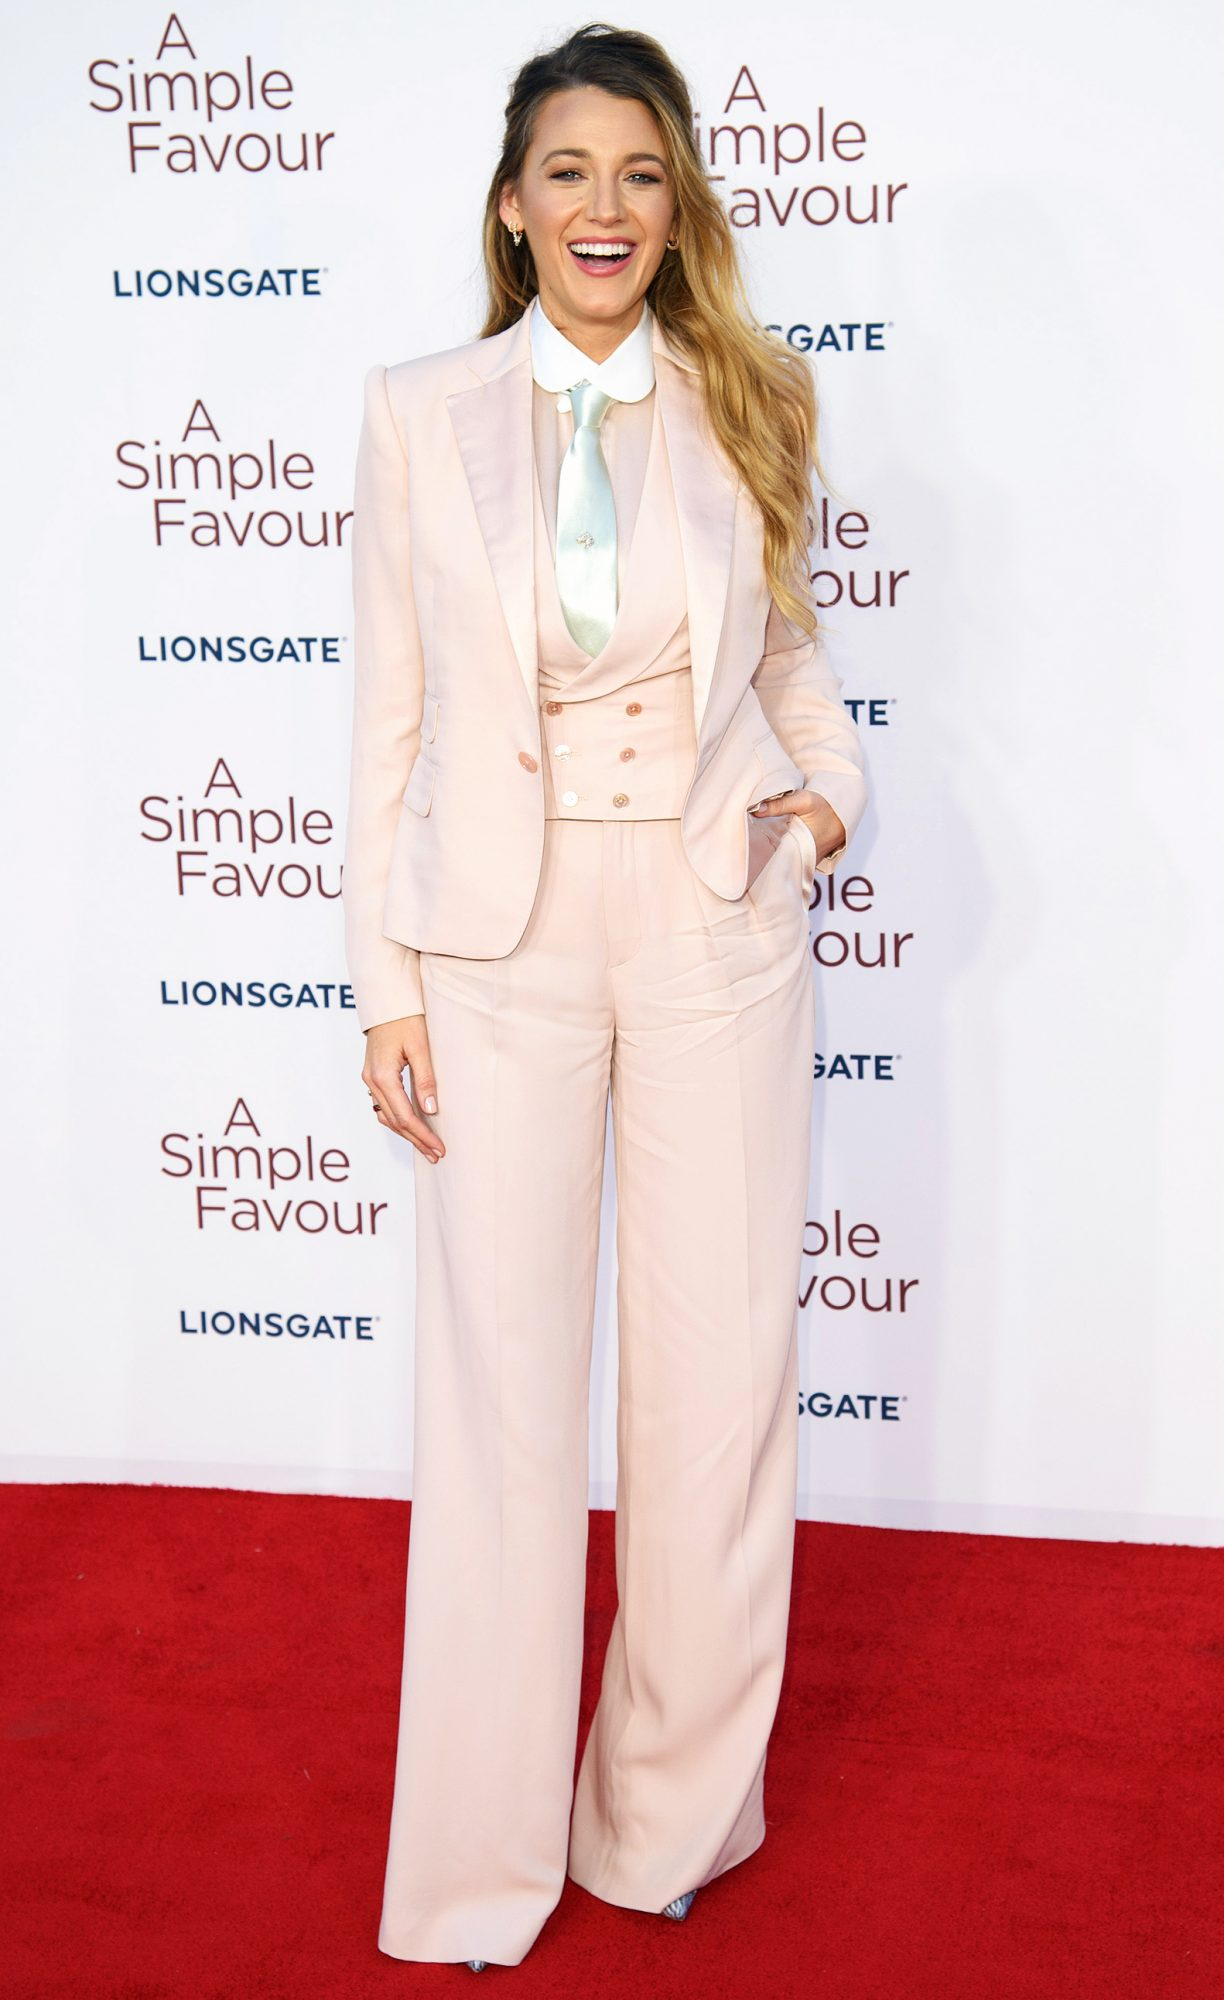 'A Simple Favour' film premiere, London, UK - 17 Sep 2018